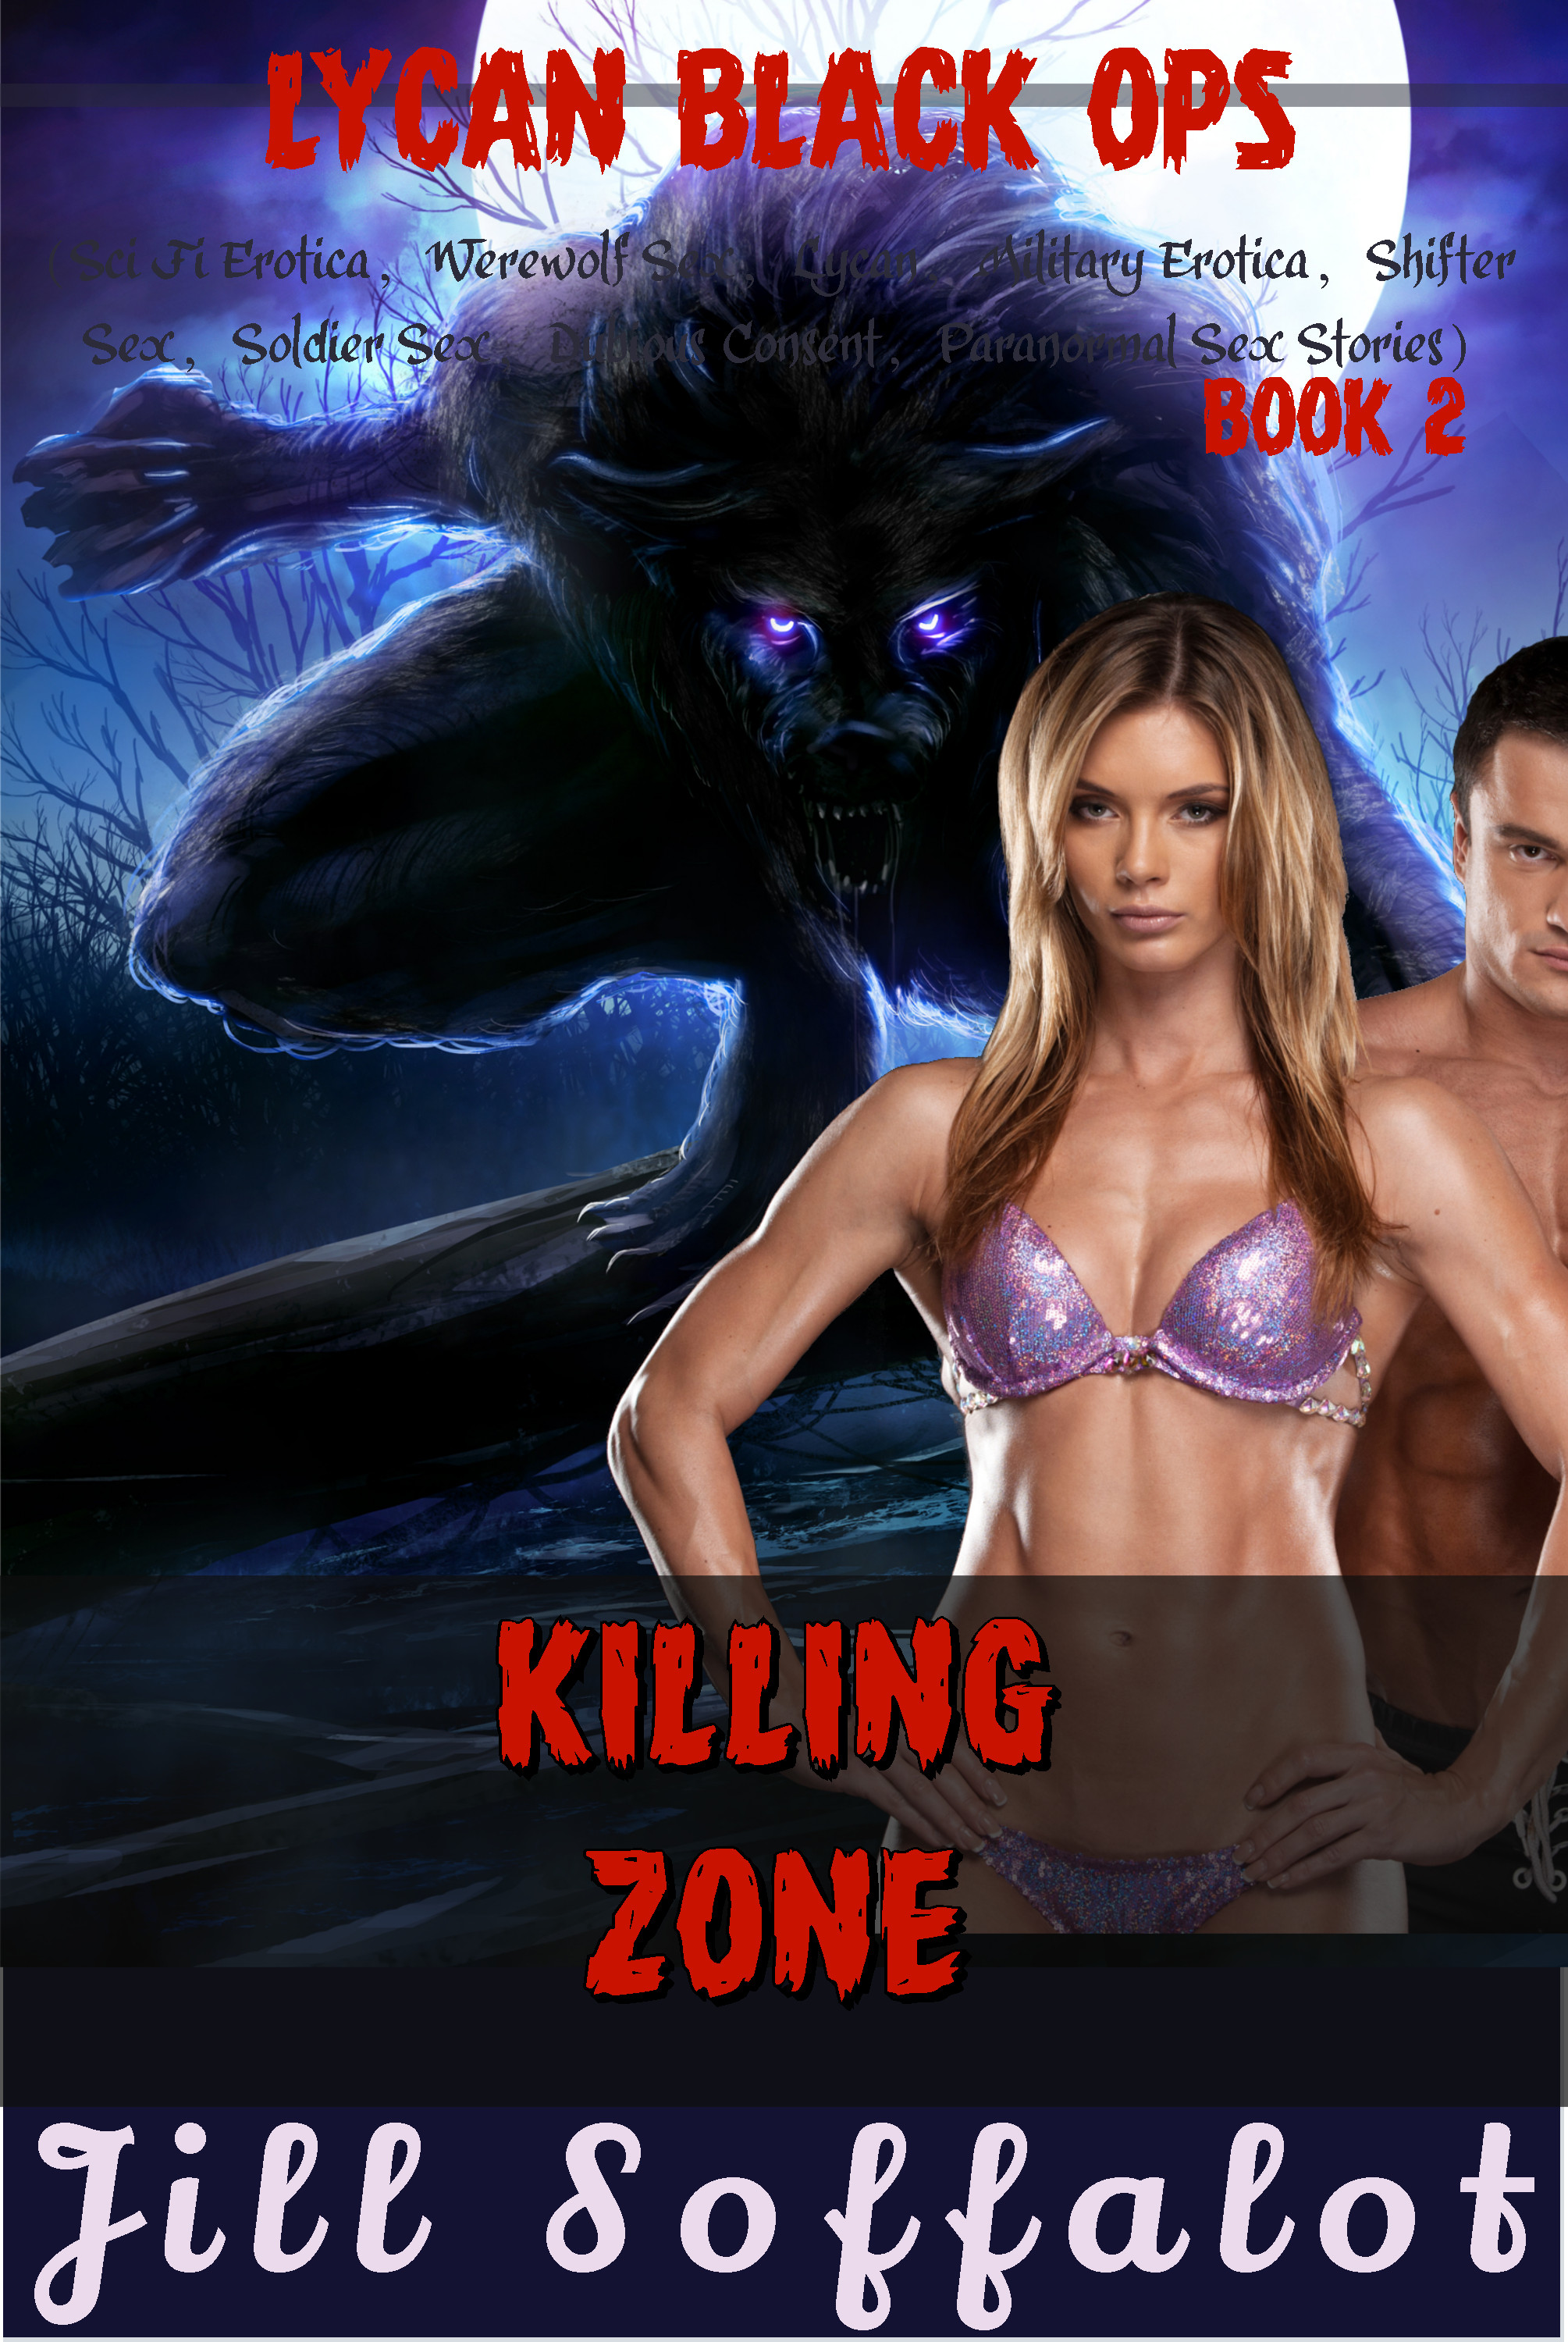 Jill Soffalot - Lycan Black Ops: Book 2: Killing Zone (Sci Fi Erotica, Werewolf Sex, Lycan, Military Erotica, Shifter Sex, Soldier Sex, Dubious Consent, Paranormal Sex Stories)